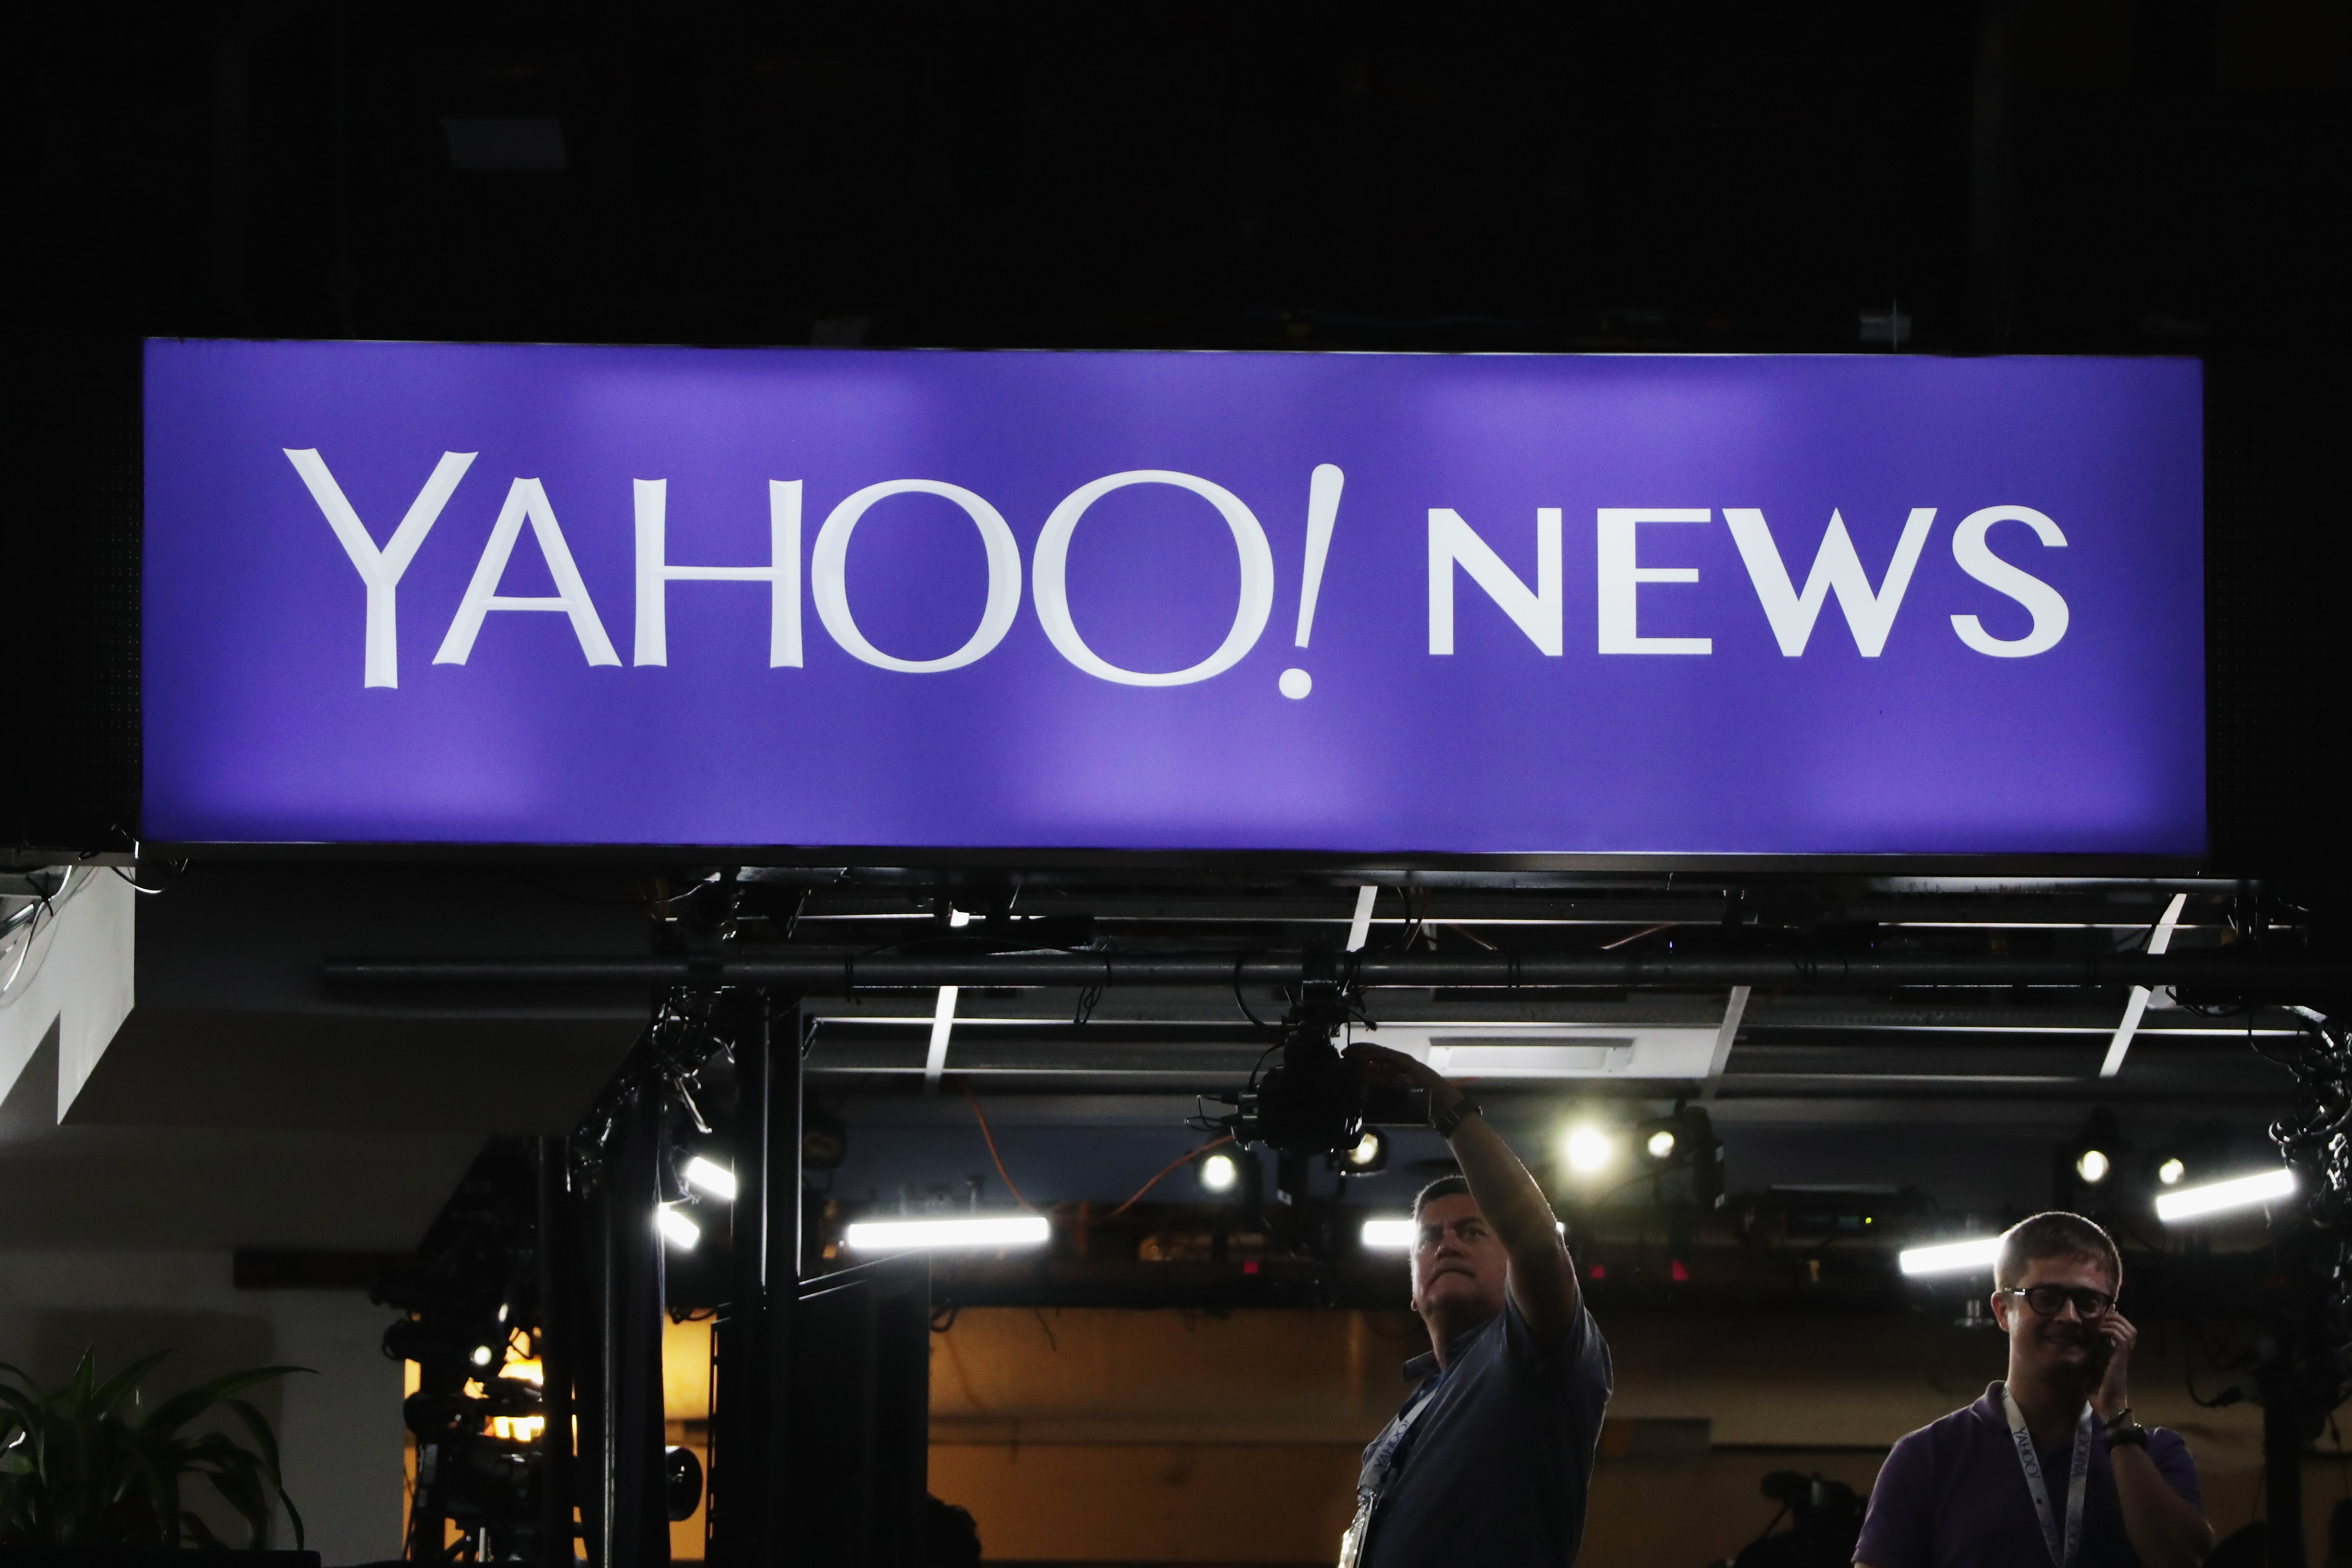 Yahoo news - The Yahoo Breach Proves We Need Ways To Hit The Attackers Before They Strike